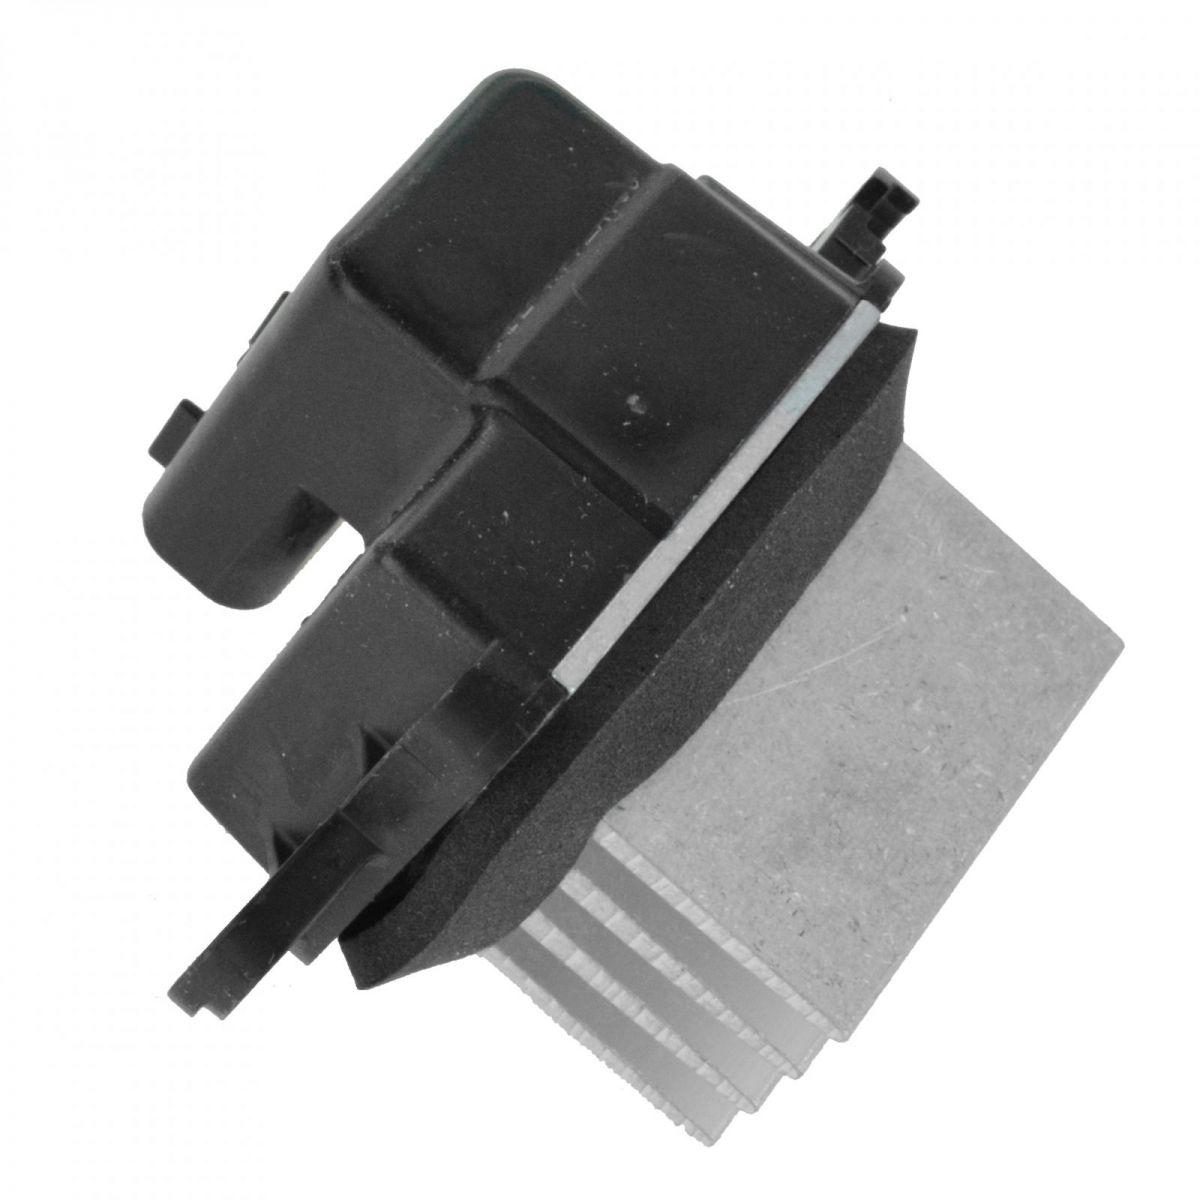 Seasons® Nissan Pathfinder 1996 2004 HVAC Blower Motor Resistor also 2002 Nissan Pathfinder Blower Motor Resistor in addition Nissan Frontier Blower Motor Resistor Location furthermore Nissan Pathfinder 1997 1999 Maxima HVAC Blower Motor Resistor OEM NEW additionally Blower Motor Heater Fan Resistor For Nissan Navara Pathfinder R51 05. on nissan pathfinder blower motor resistor